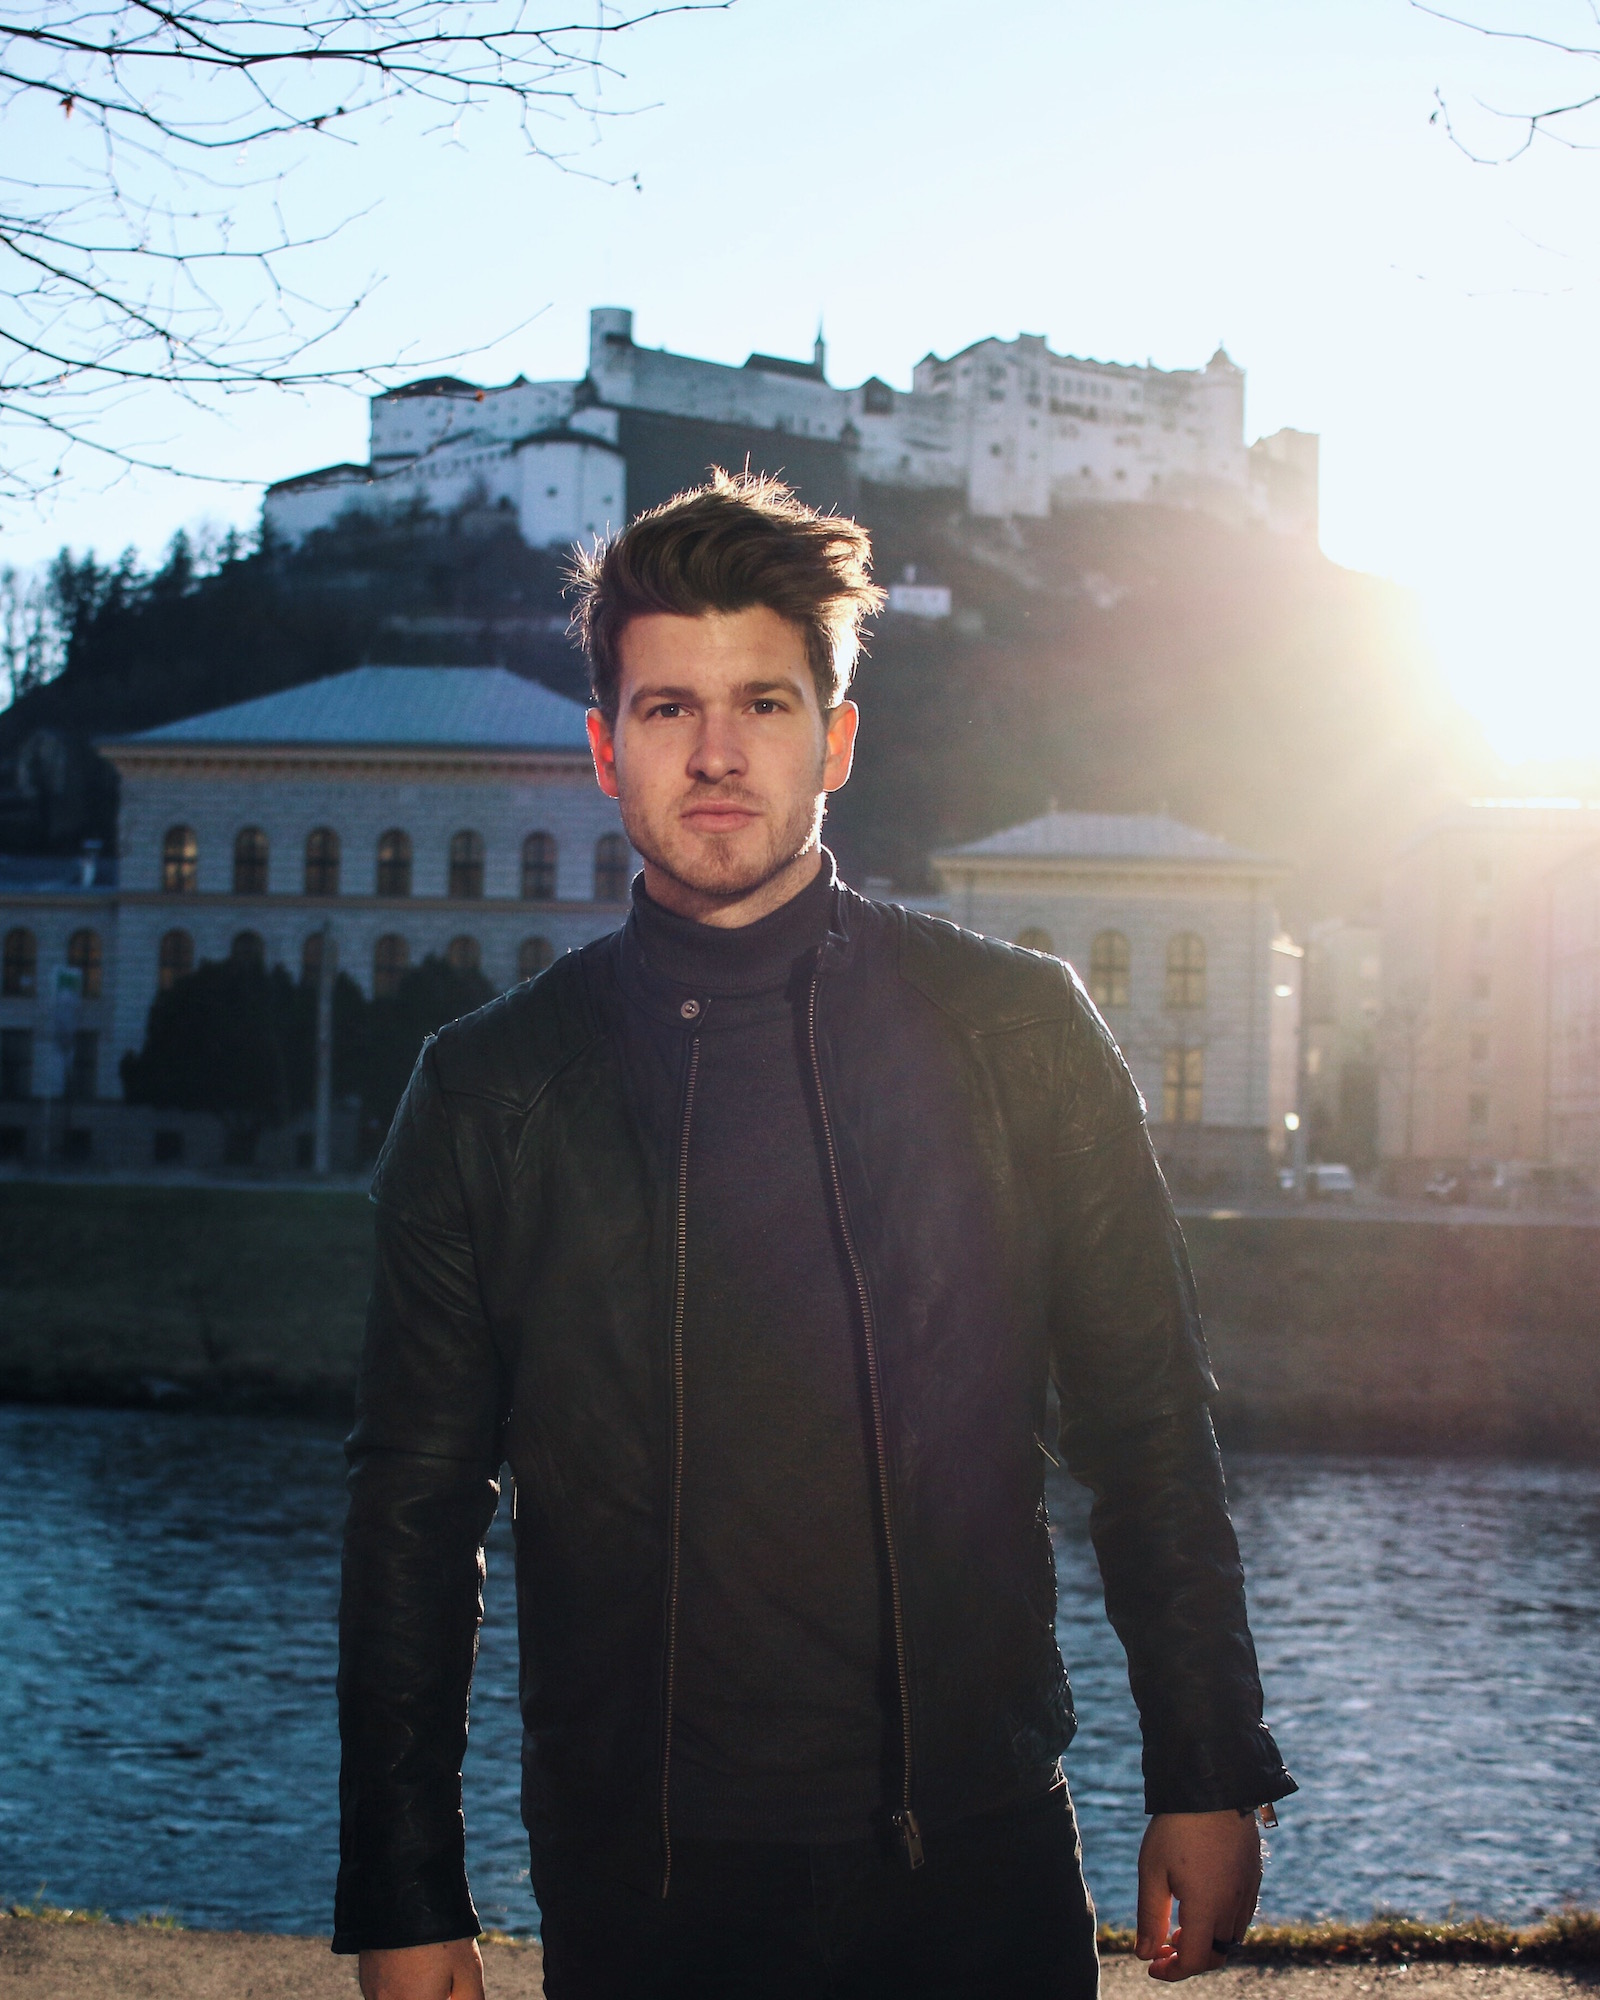 All Black Look by Selected Homme Lederjacke Rollkragenpullover und Chelsea Boots _ Meanwhile in Awesometown _ Wiener Blogger _ Maleblogger _ Mens Fashion Blogger6